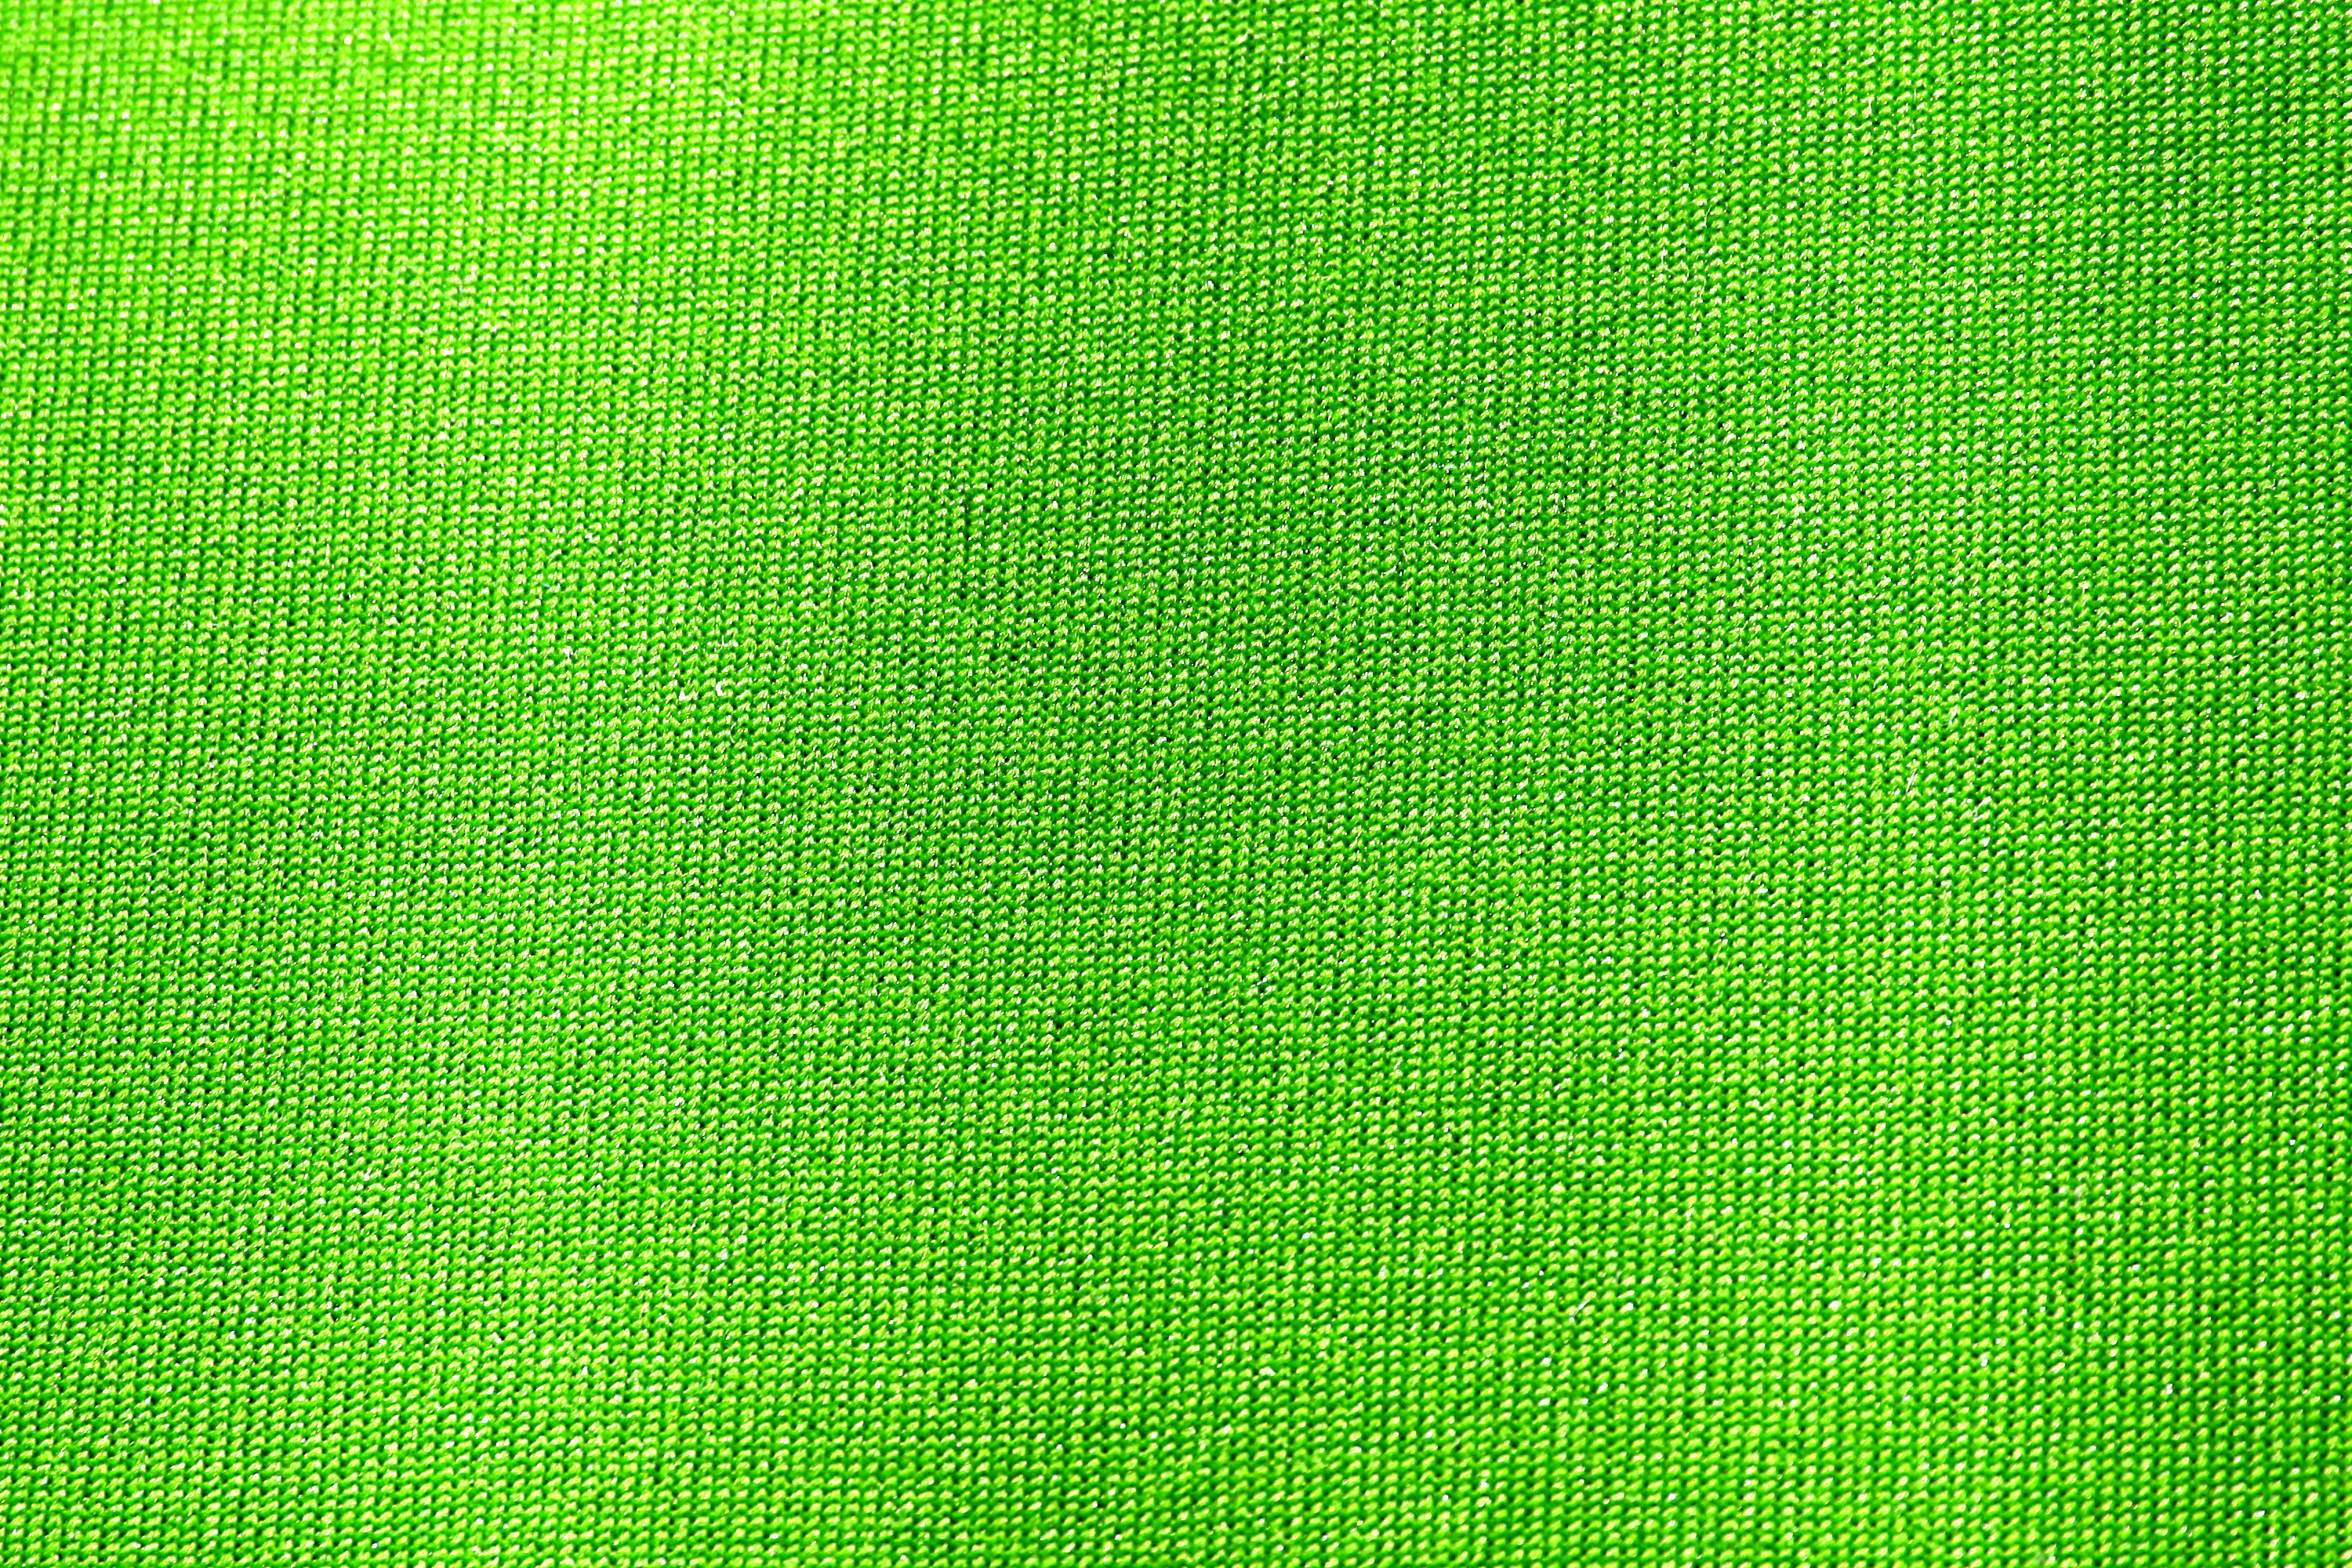 Neon green nylon fabric close up texture picture free for Green fabric